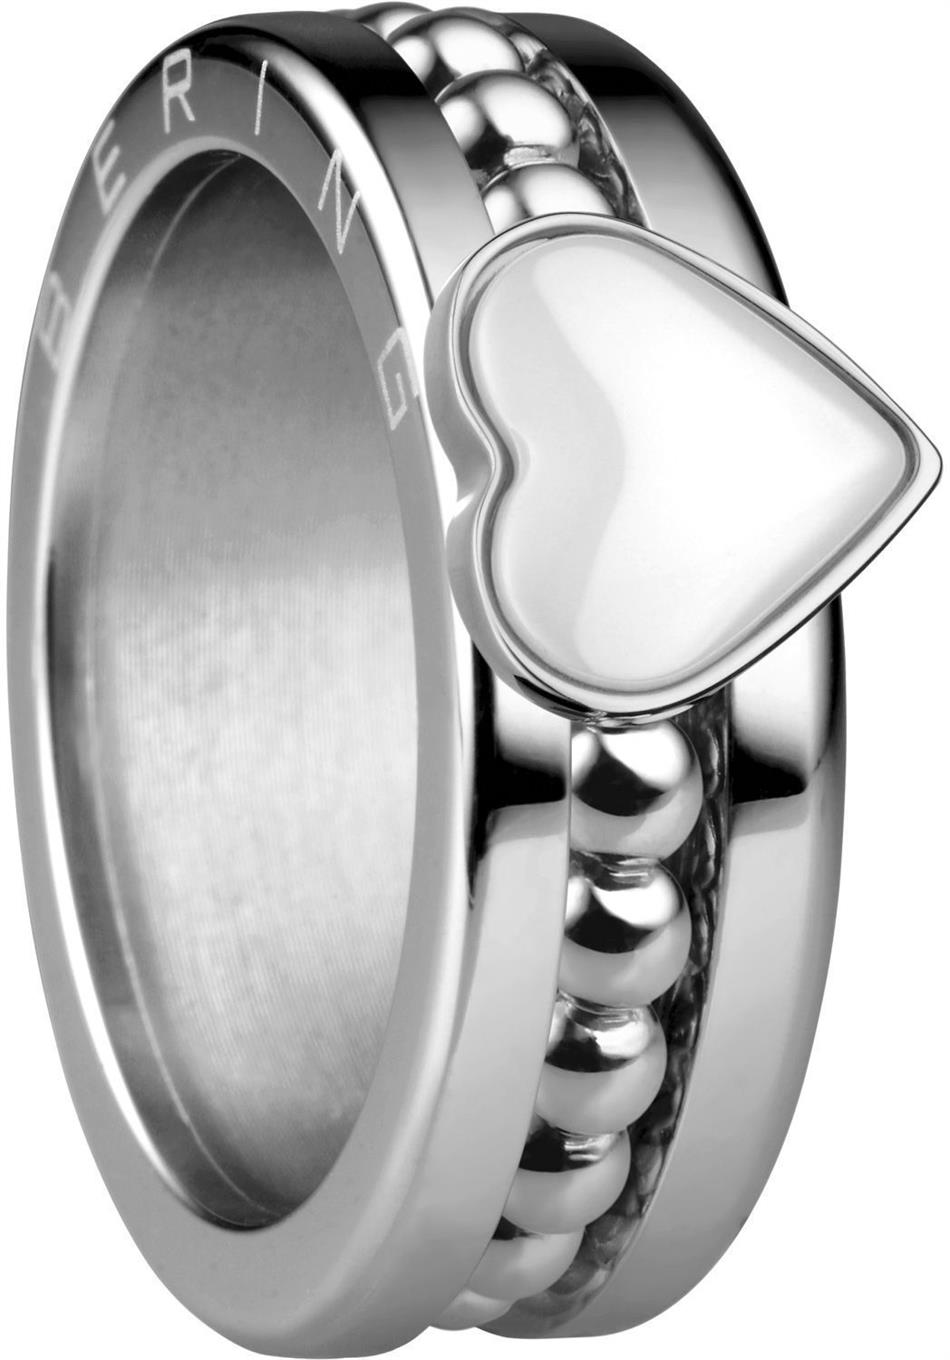 Bering - Combi-Ring - Slim Ladies Silver Plated Stainless Steel w/ White Ceramic Heart Inner Ring